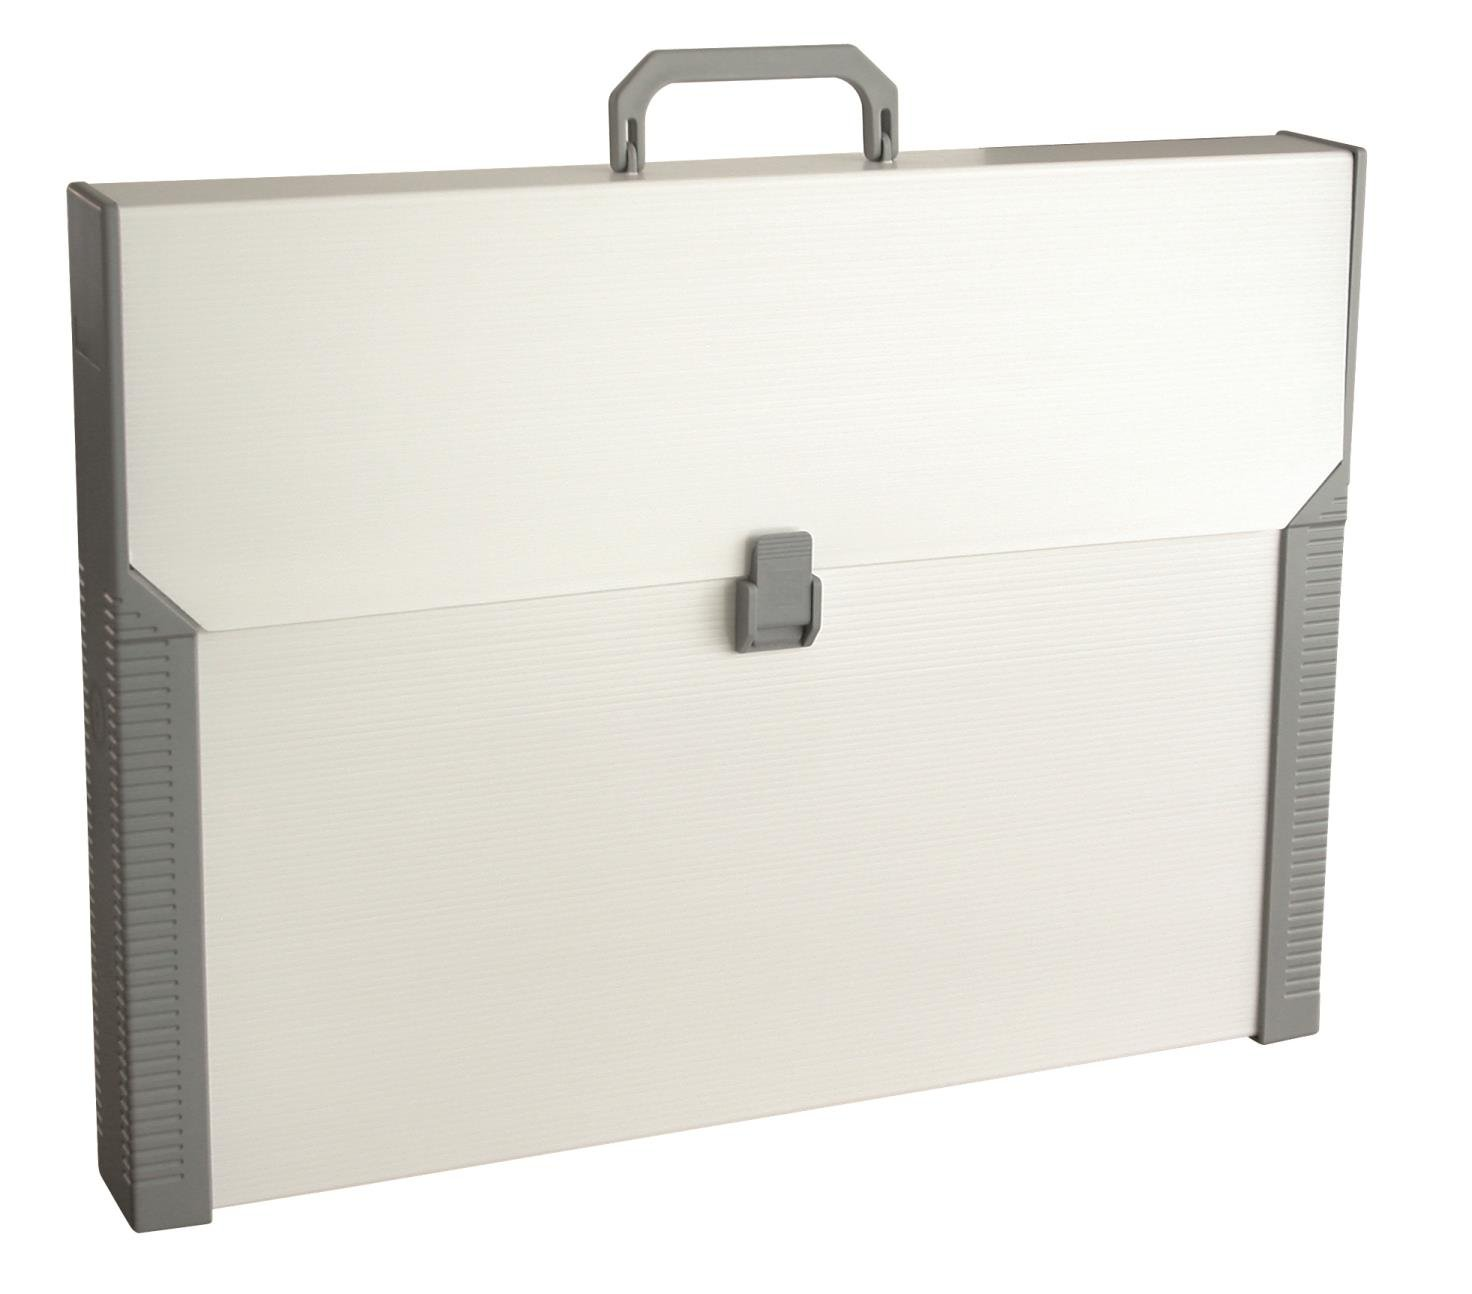 Aristo Studio Carry Case A3 Beige/Grey Plastic for Aristo Drawing Boards Studio Case A3